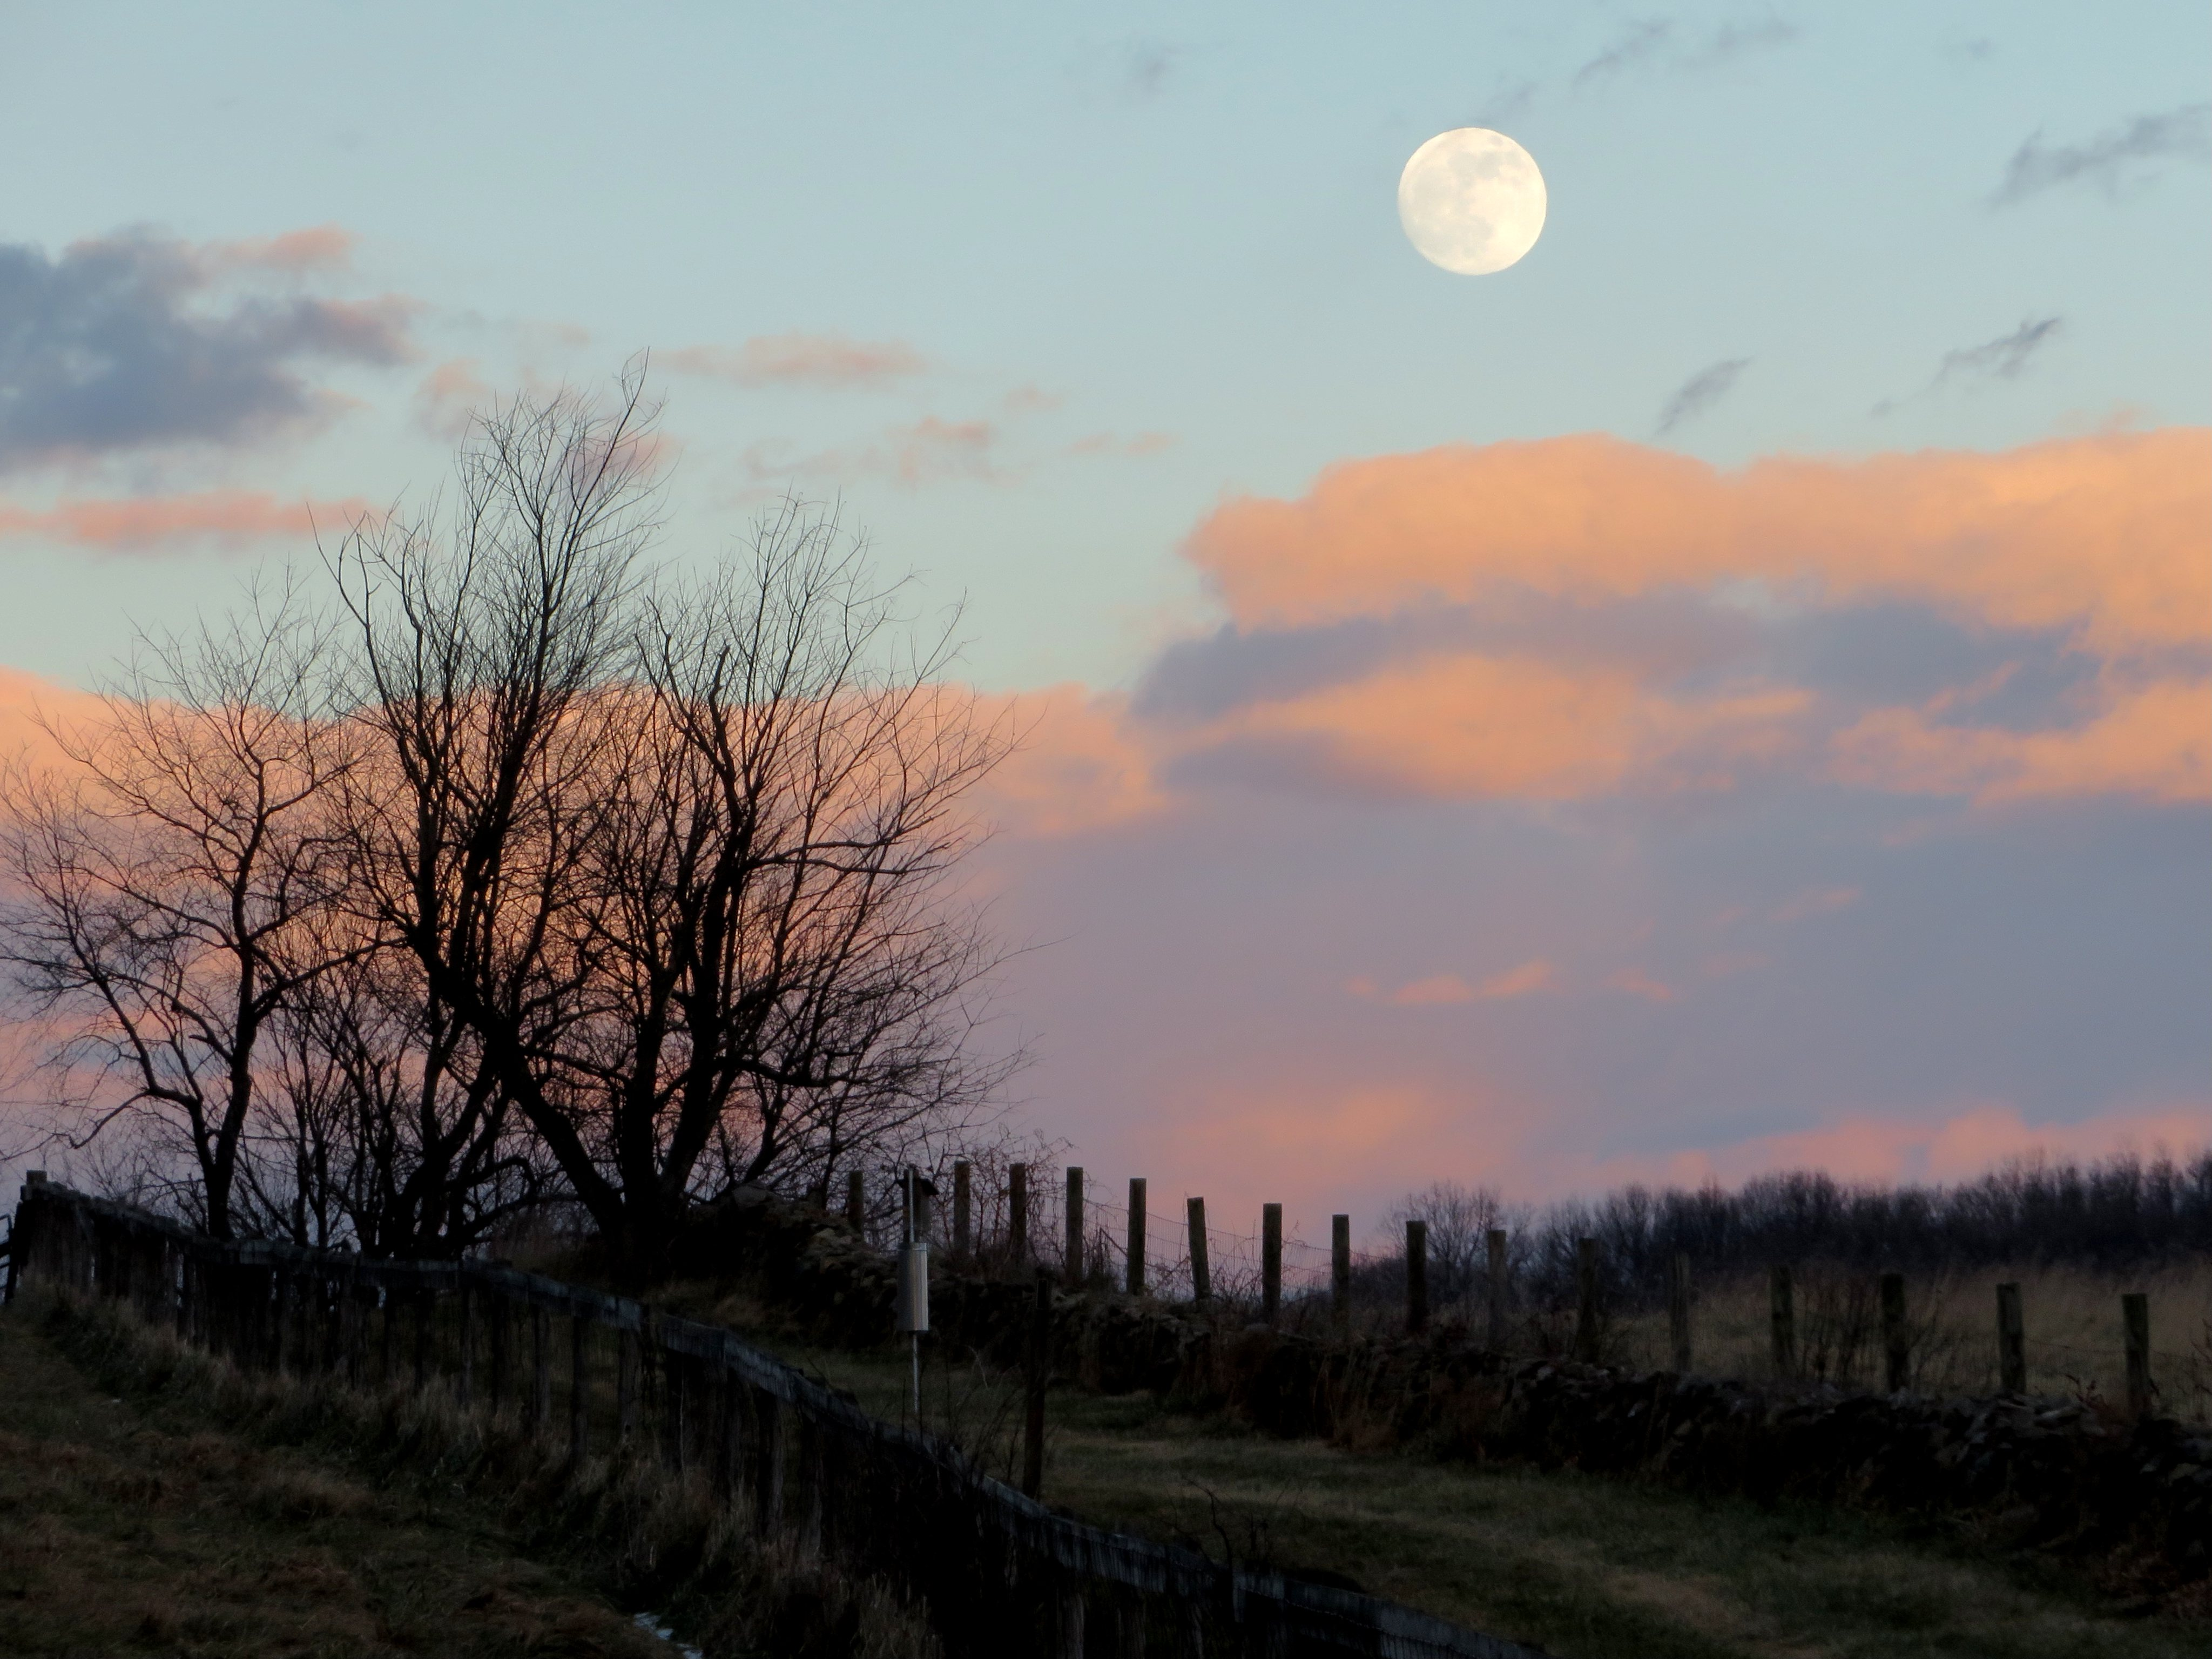 77916 free wallpaper 1080x2400 for phone, download images Nature, Twilight, Clouds, Moon, Dusk, Fence 1080x2400 for mobile